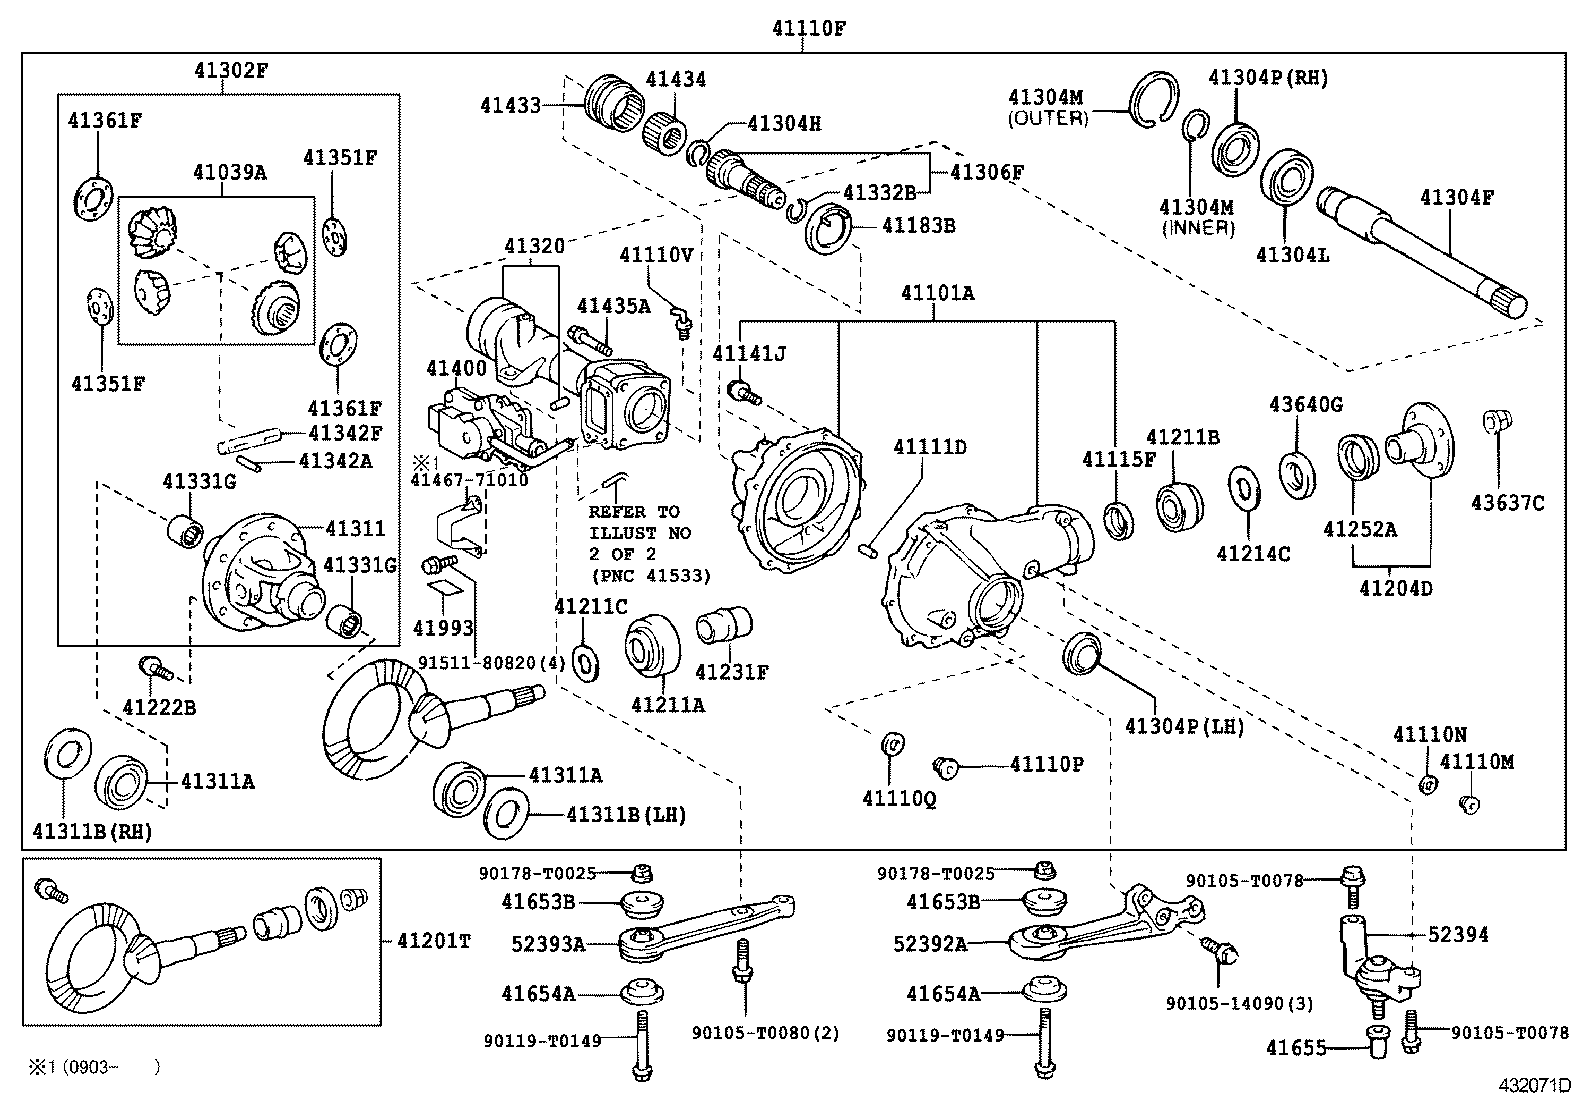 1976 toyota land cruiser wiring diagram